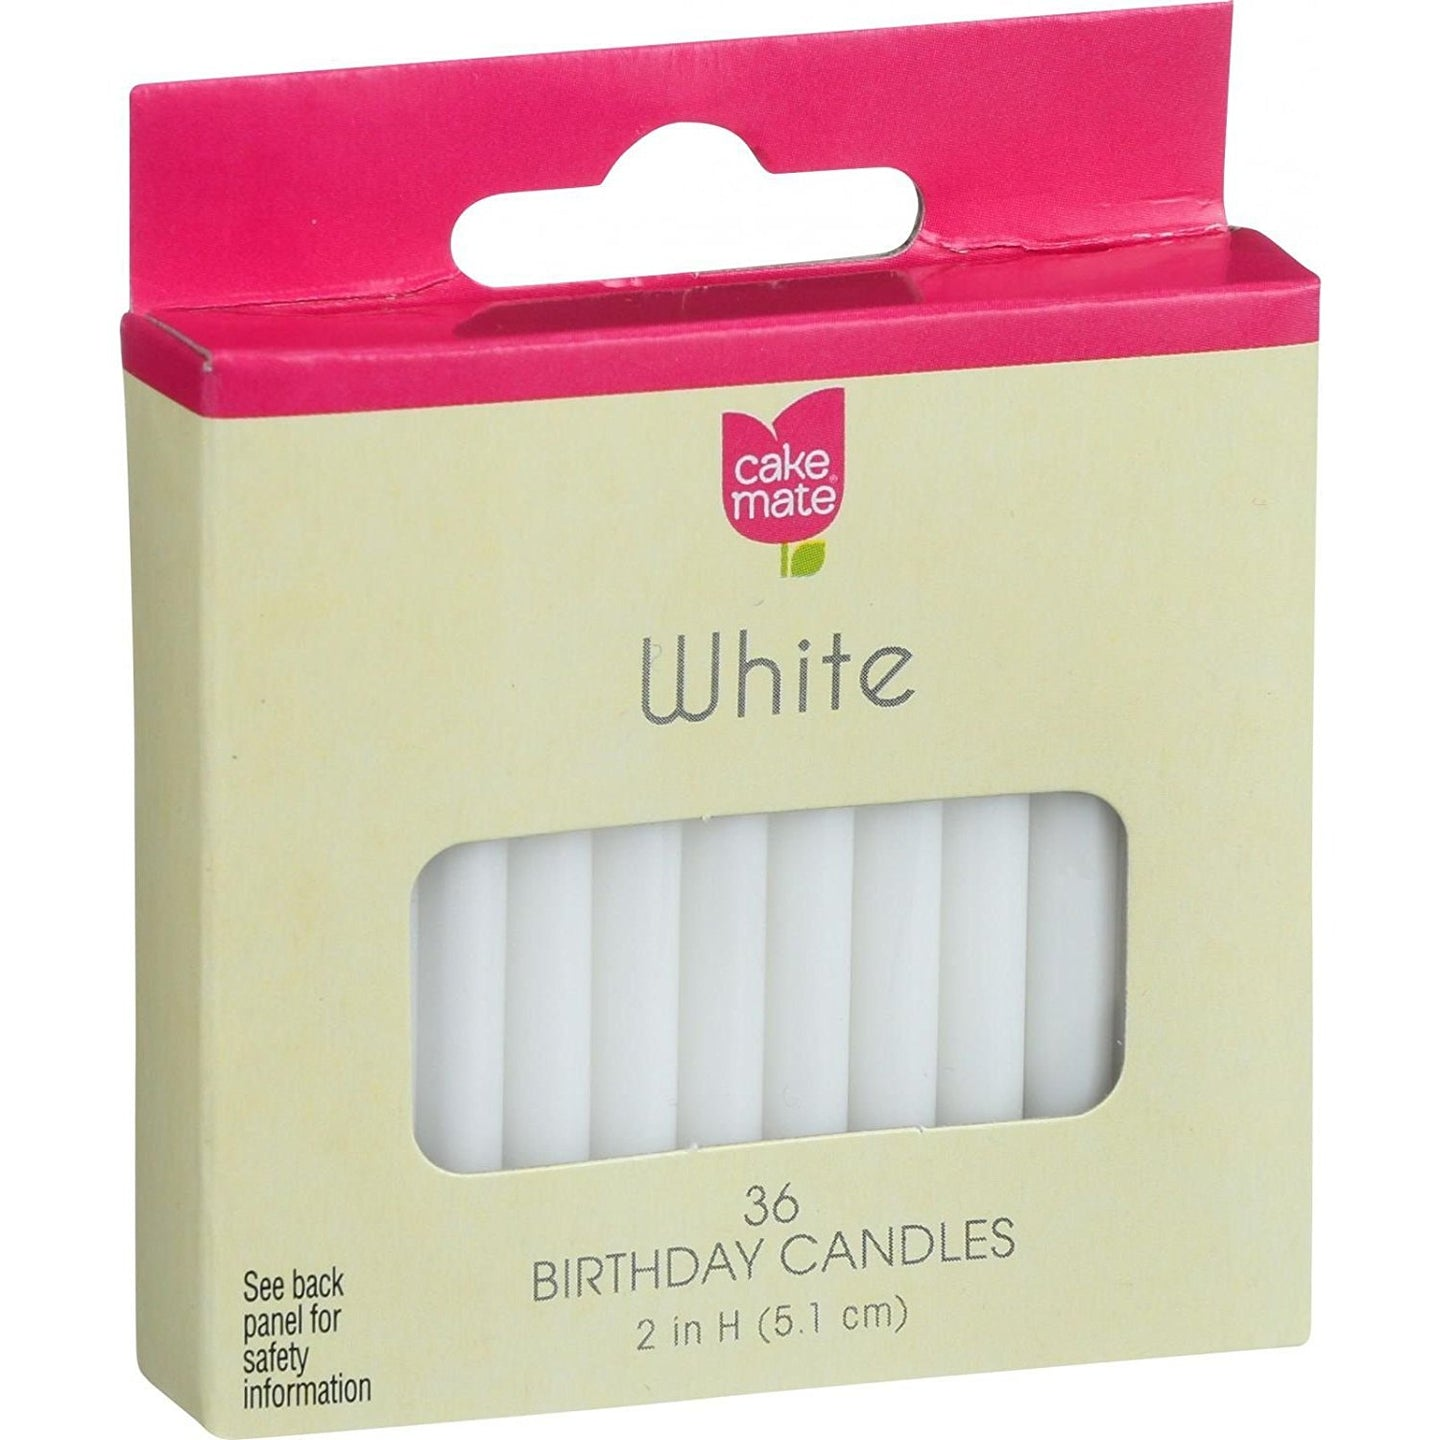 Cake Mate Round White Birthday Candle, 2 x 3/16 inch - 36 per pack -- 12 packs per case. - Buy Fast delivery